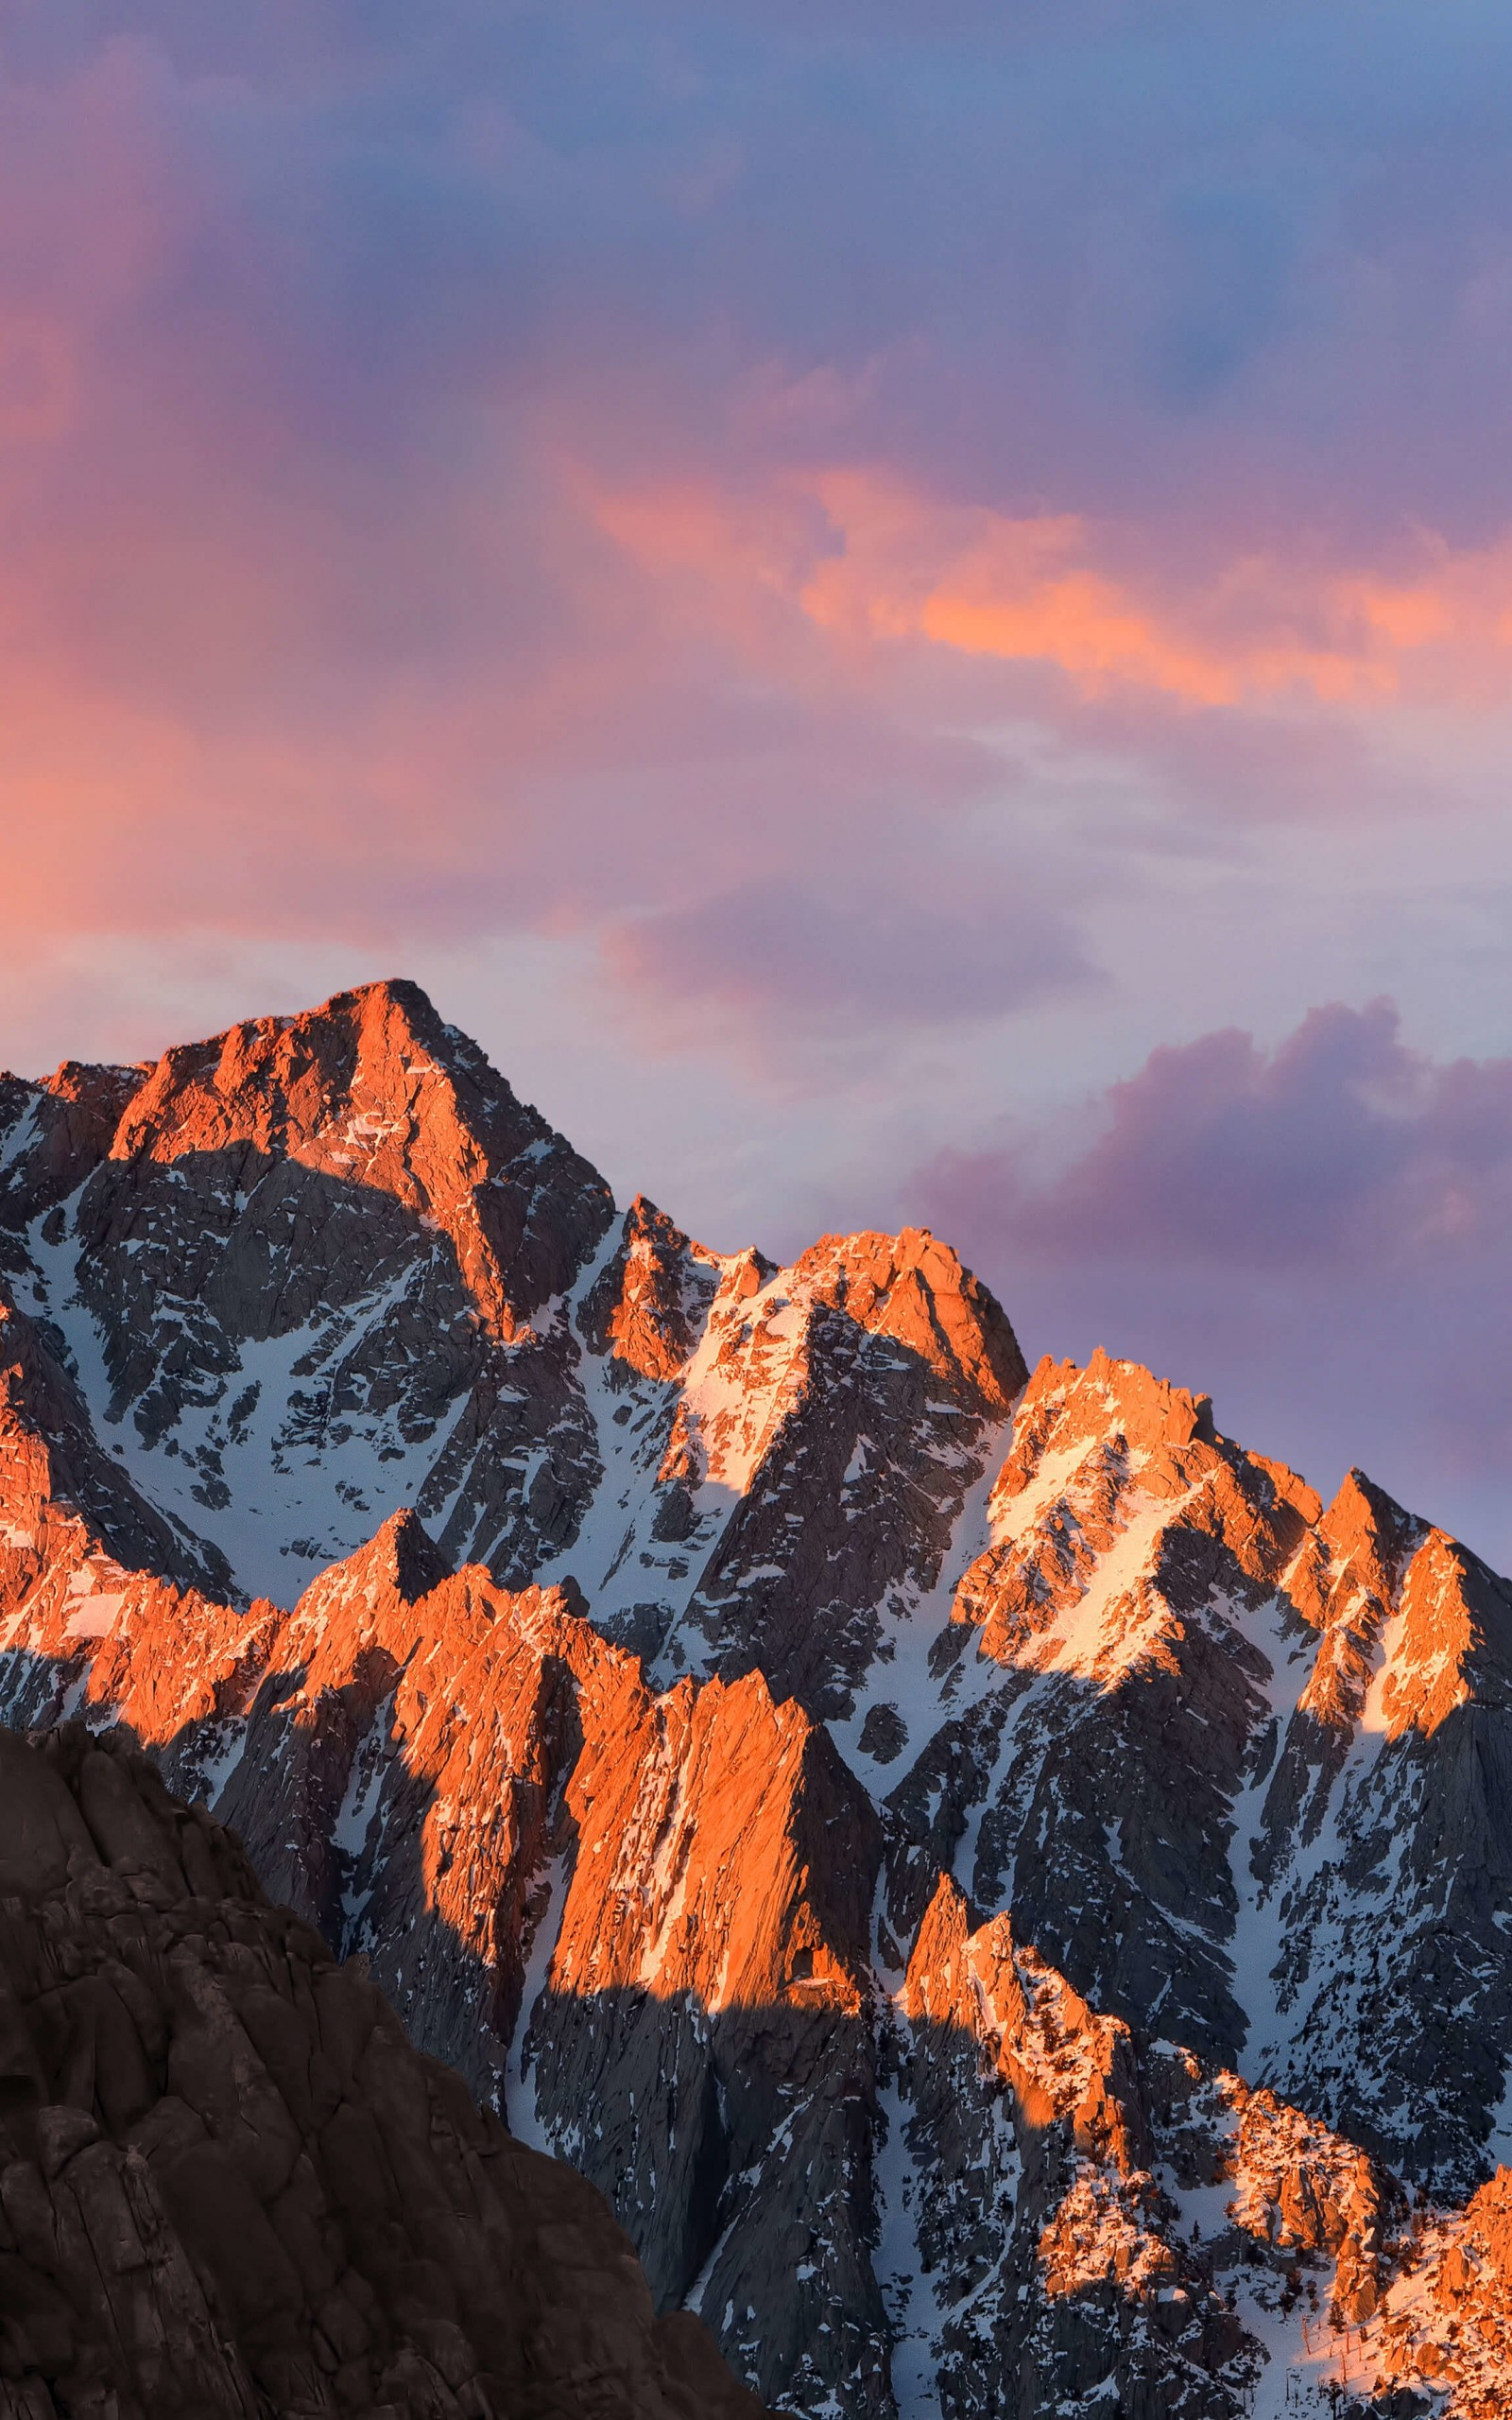 macOS Sierra Wallpaper for Amazon Kindle Fire HDX 8.9